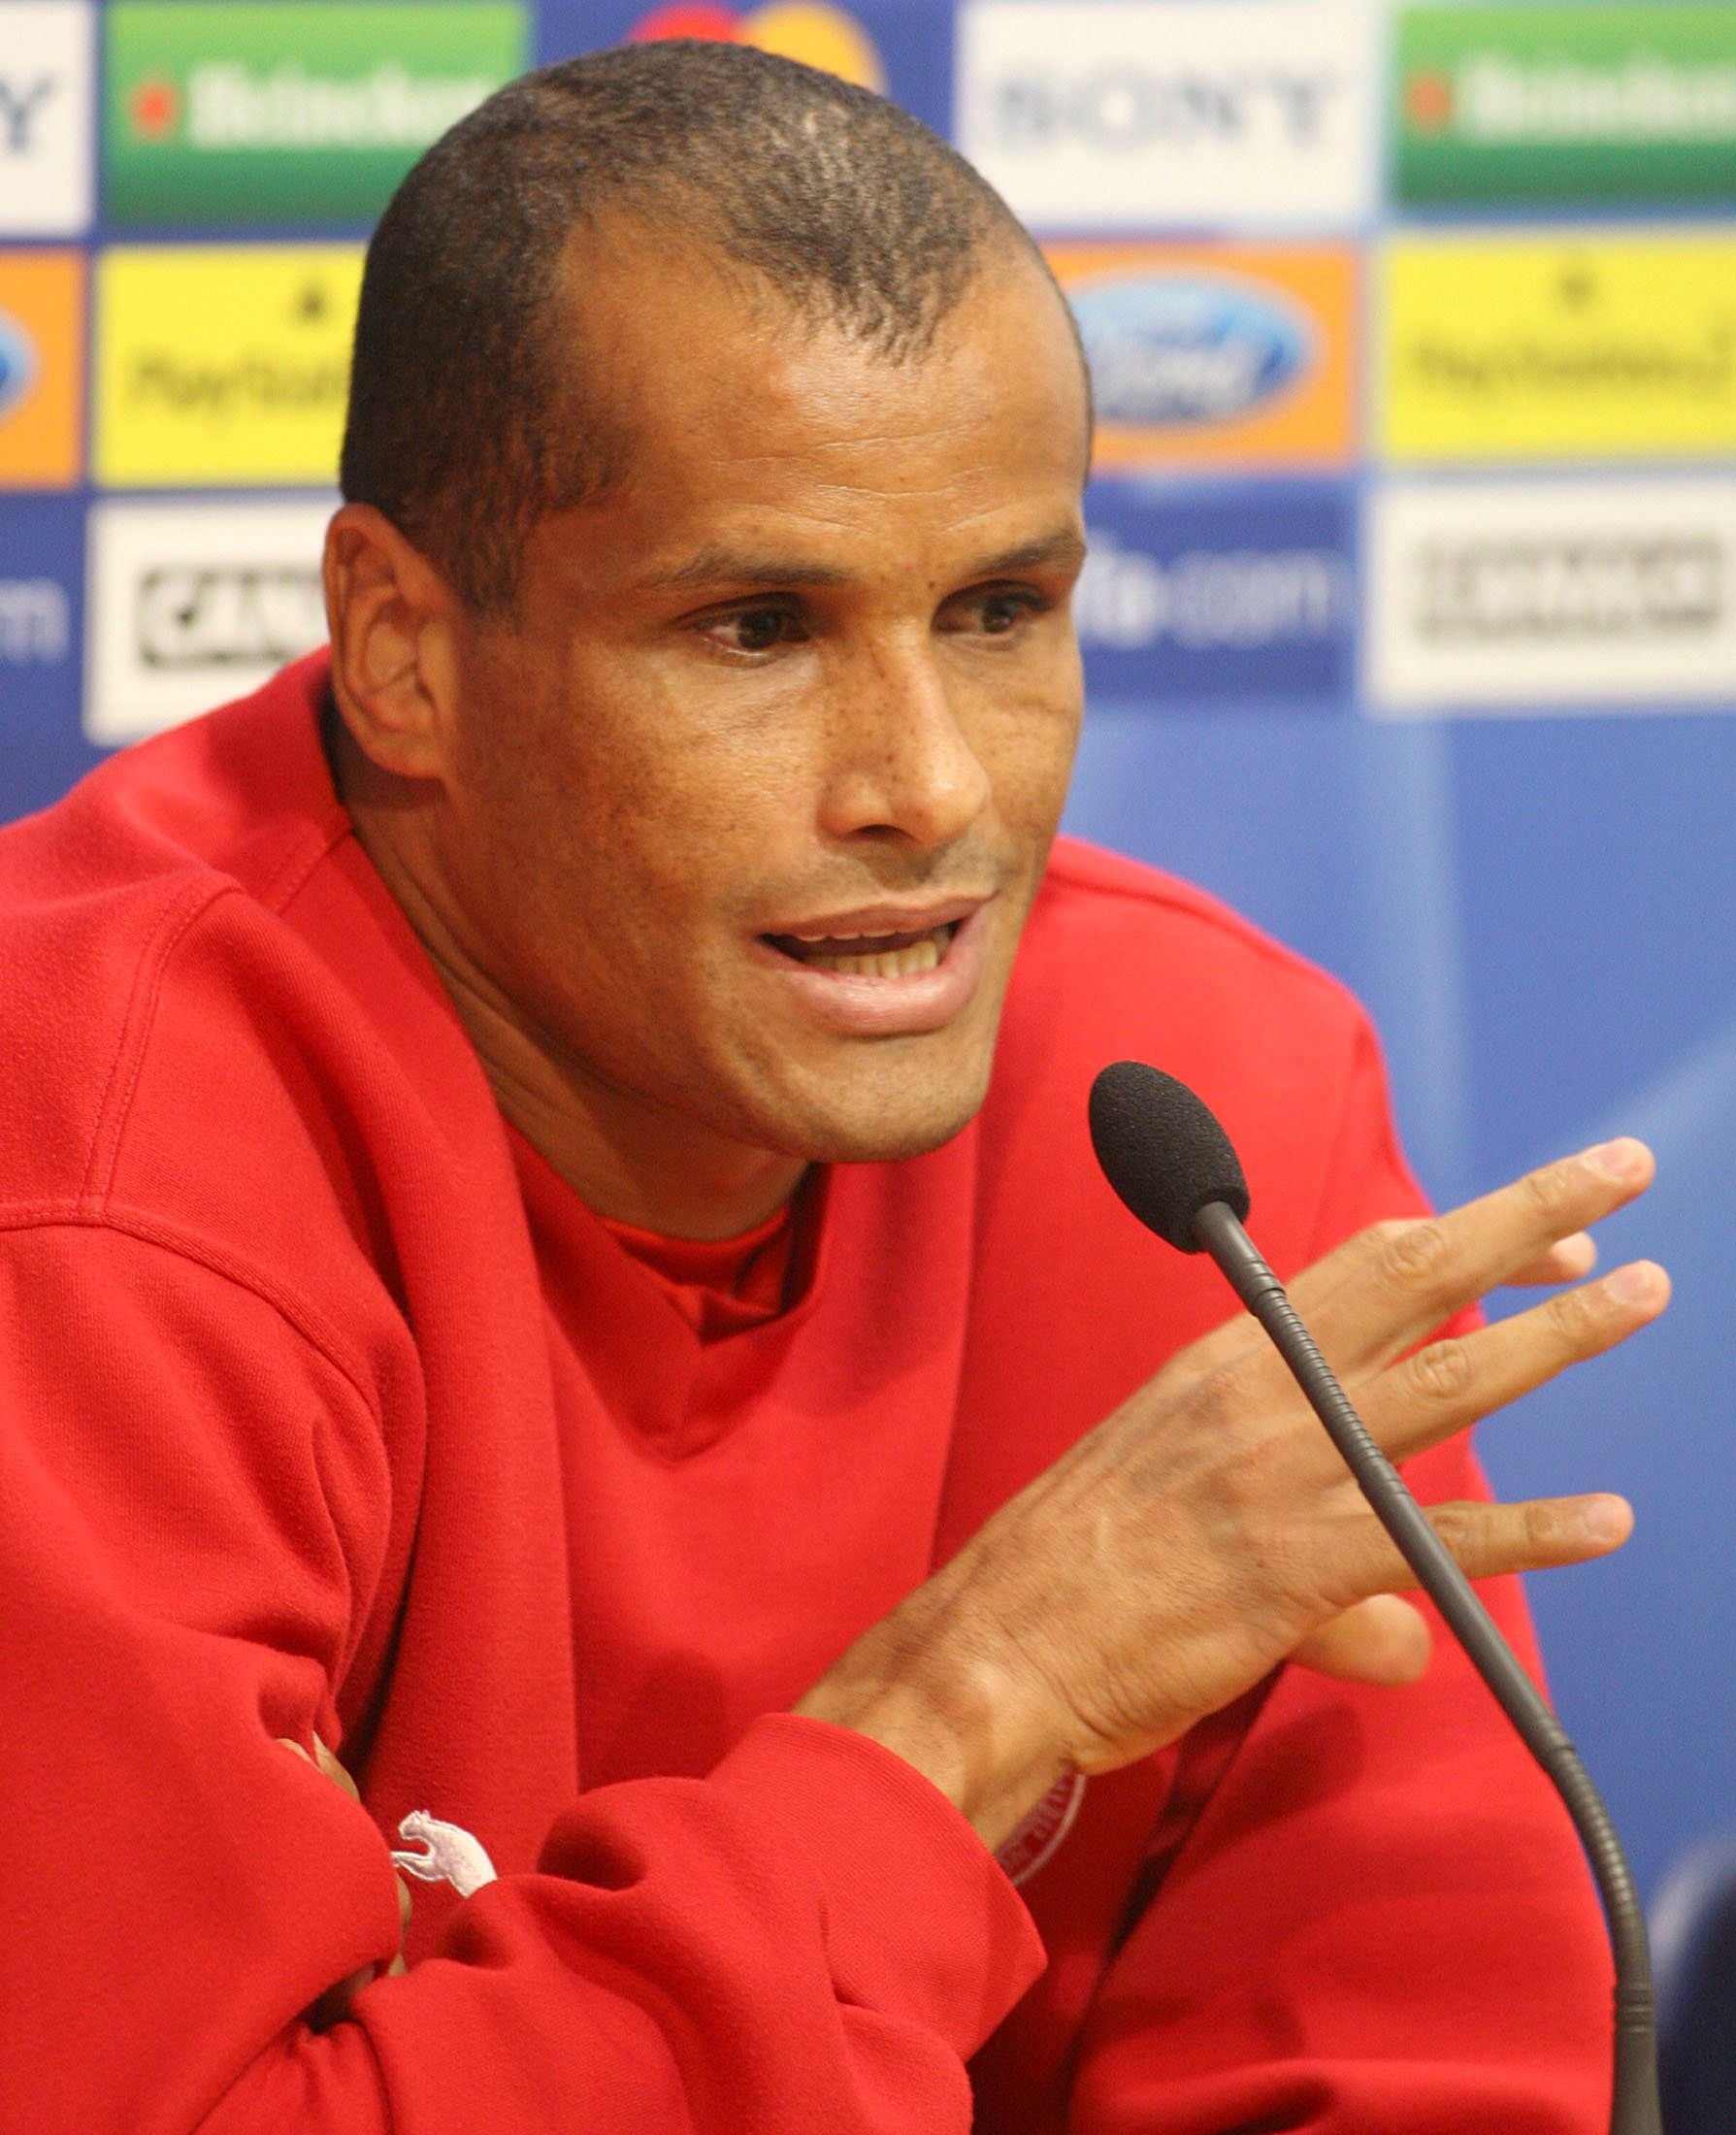 Olympiacos Rivaldo from Brazil attends a news conference in Valencia November 21, 2006. Olympiacos will face Valencia in their Champions League Group D soccer match on Wednesday.  REUTERS/Heino Kalis (SPAIN)